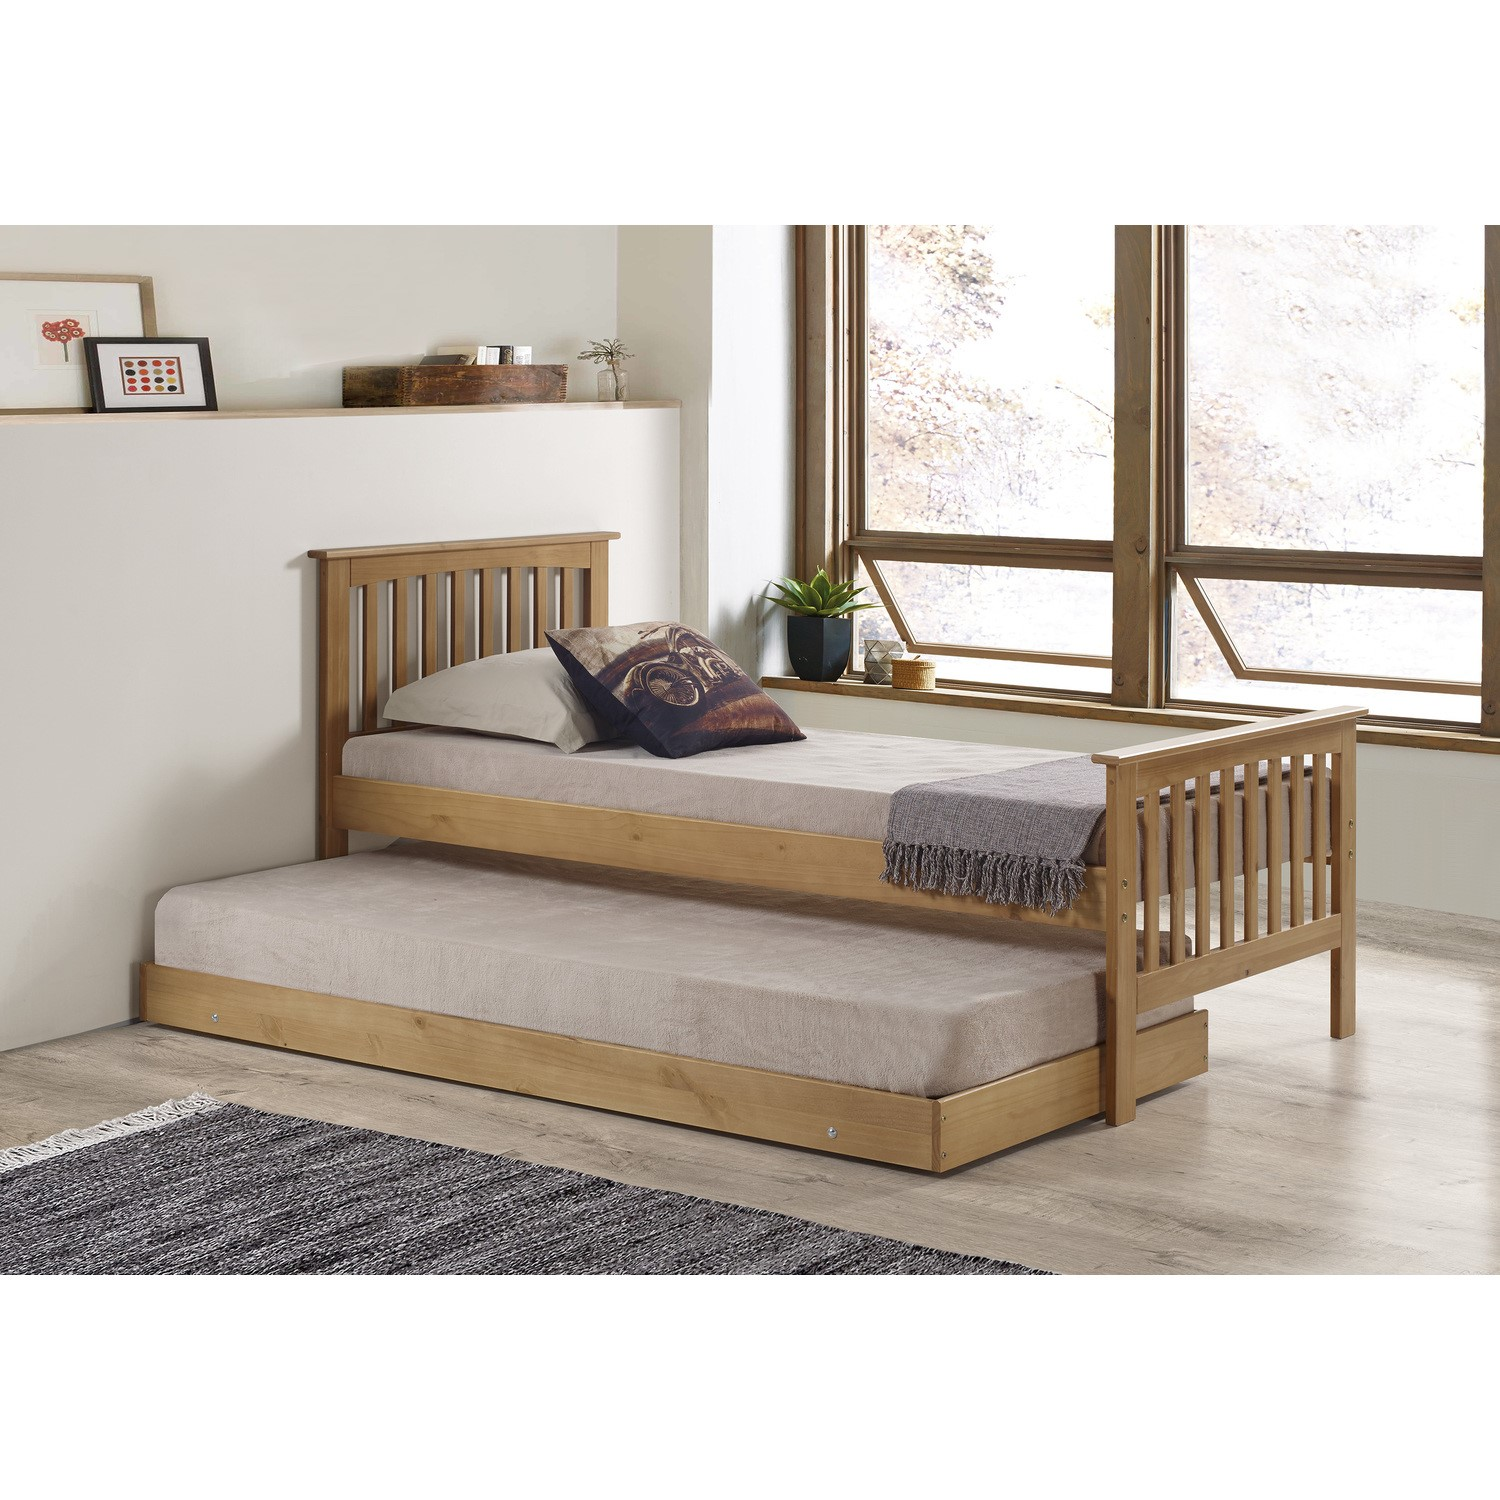 Oxford Single Guest Bed in Pine   Trundle Bed Included | Furniture123